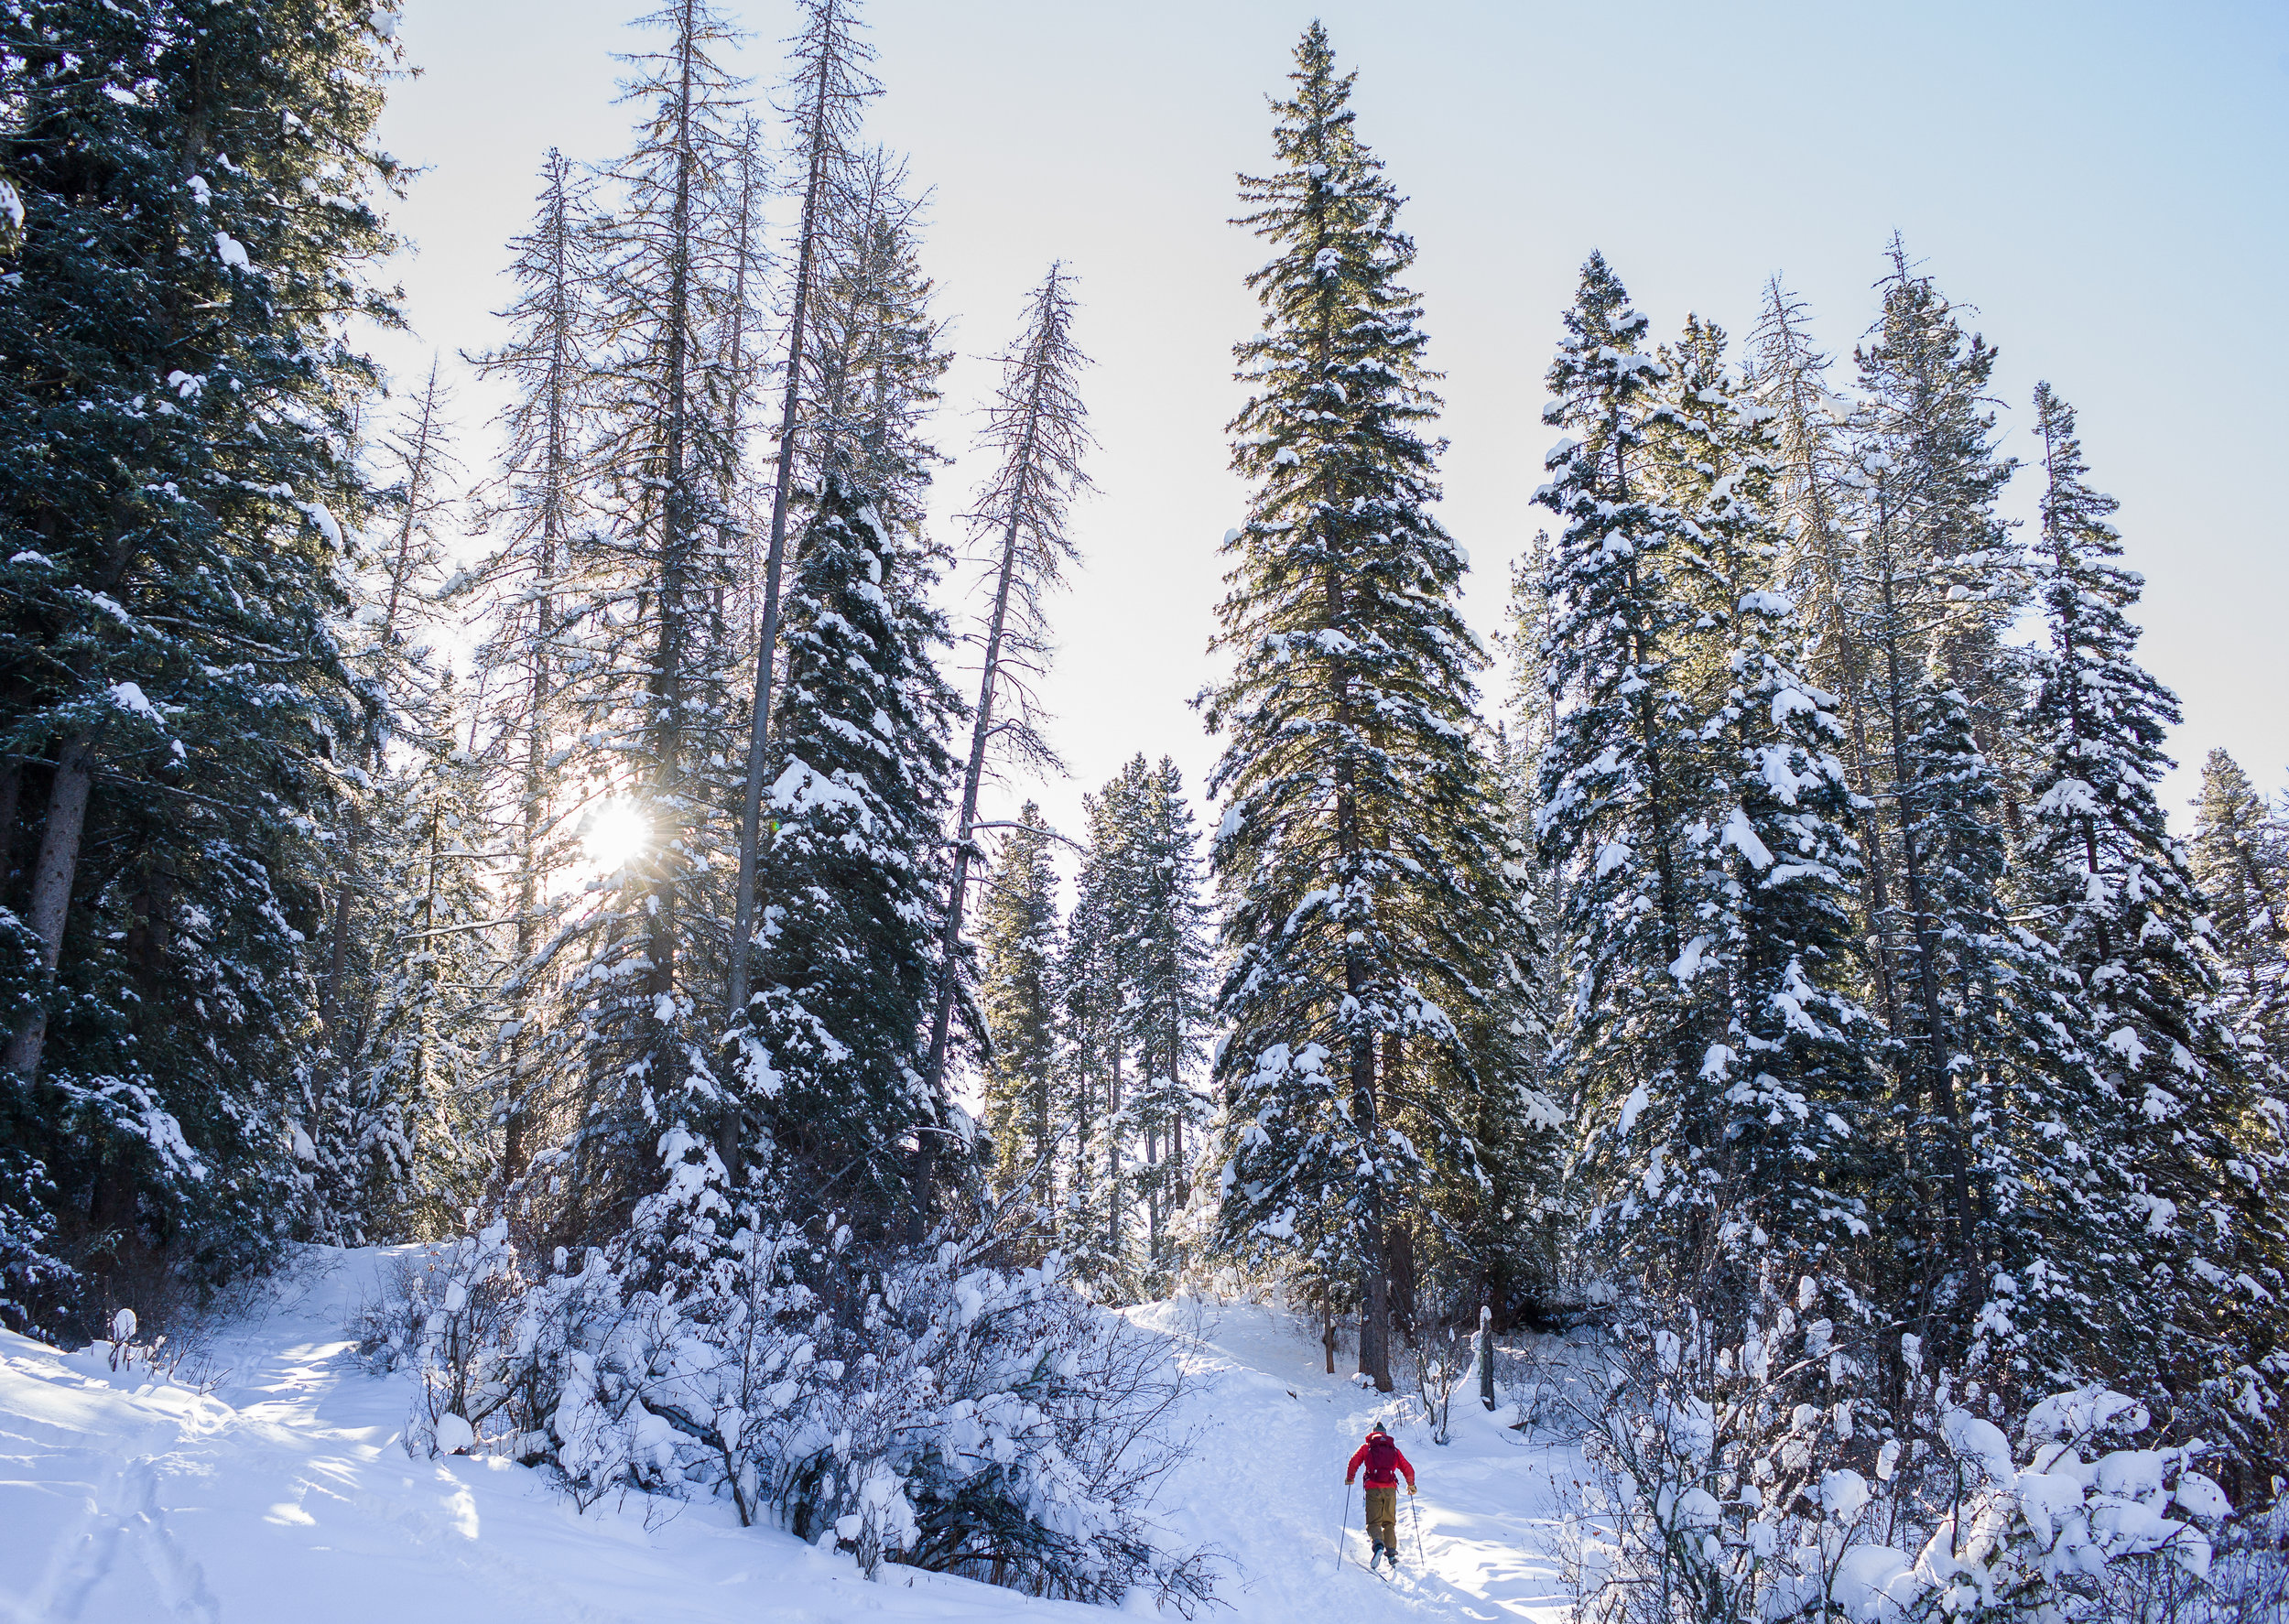 Snowshoeing through the snowy Custer Gallatin National Forest in Montana. (Photo Louise Johns.)